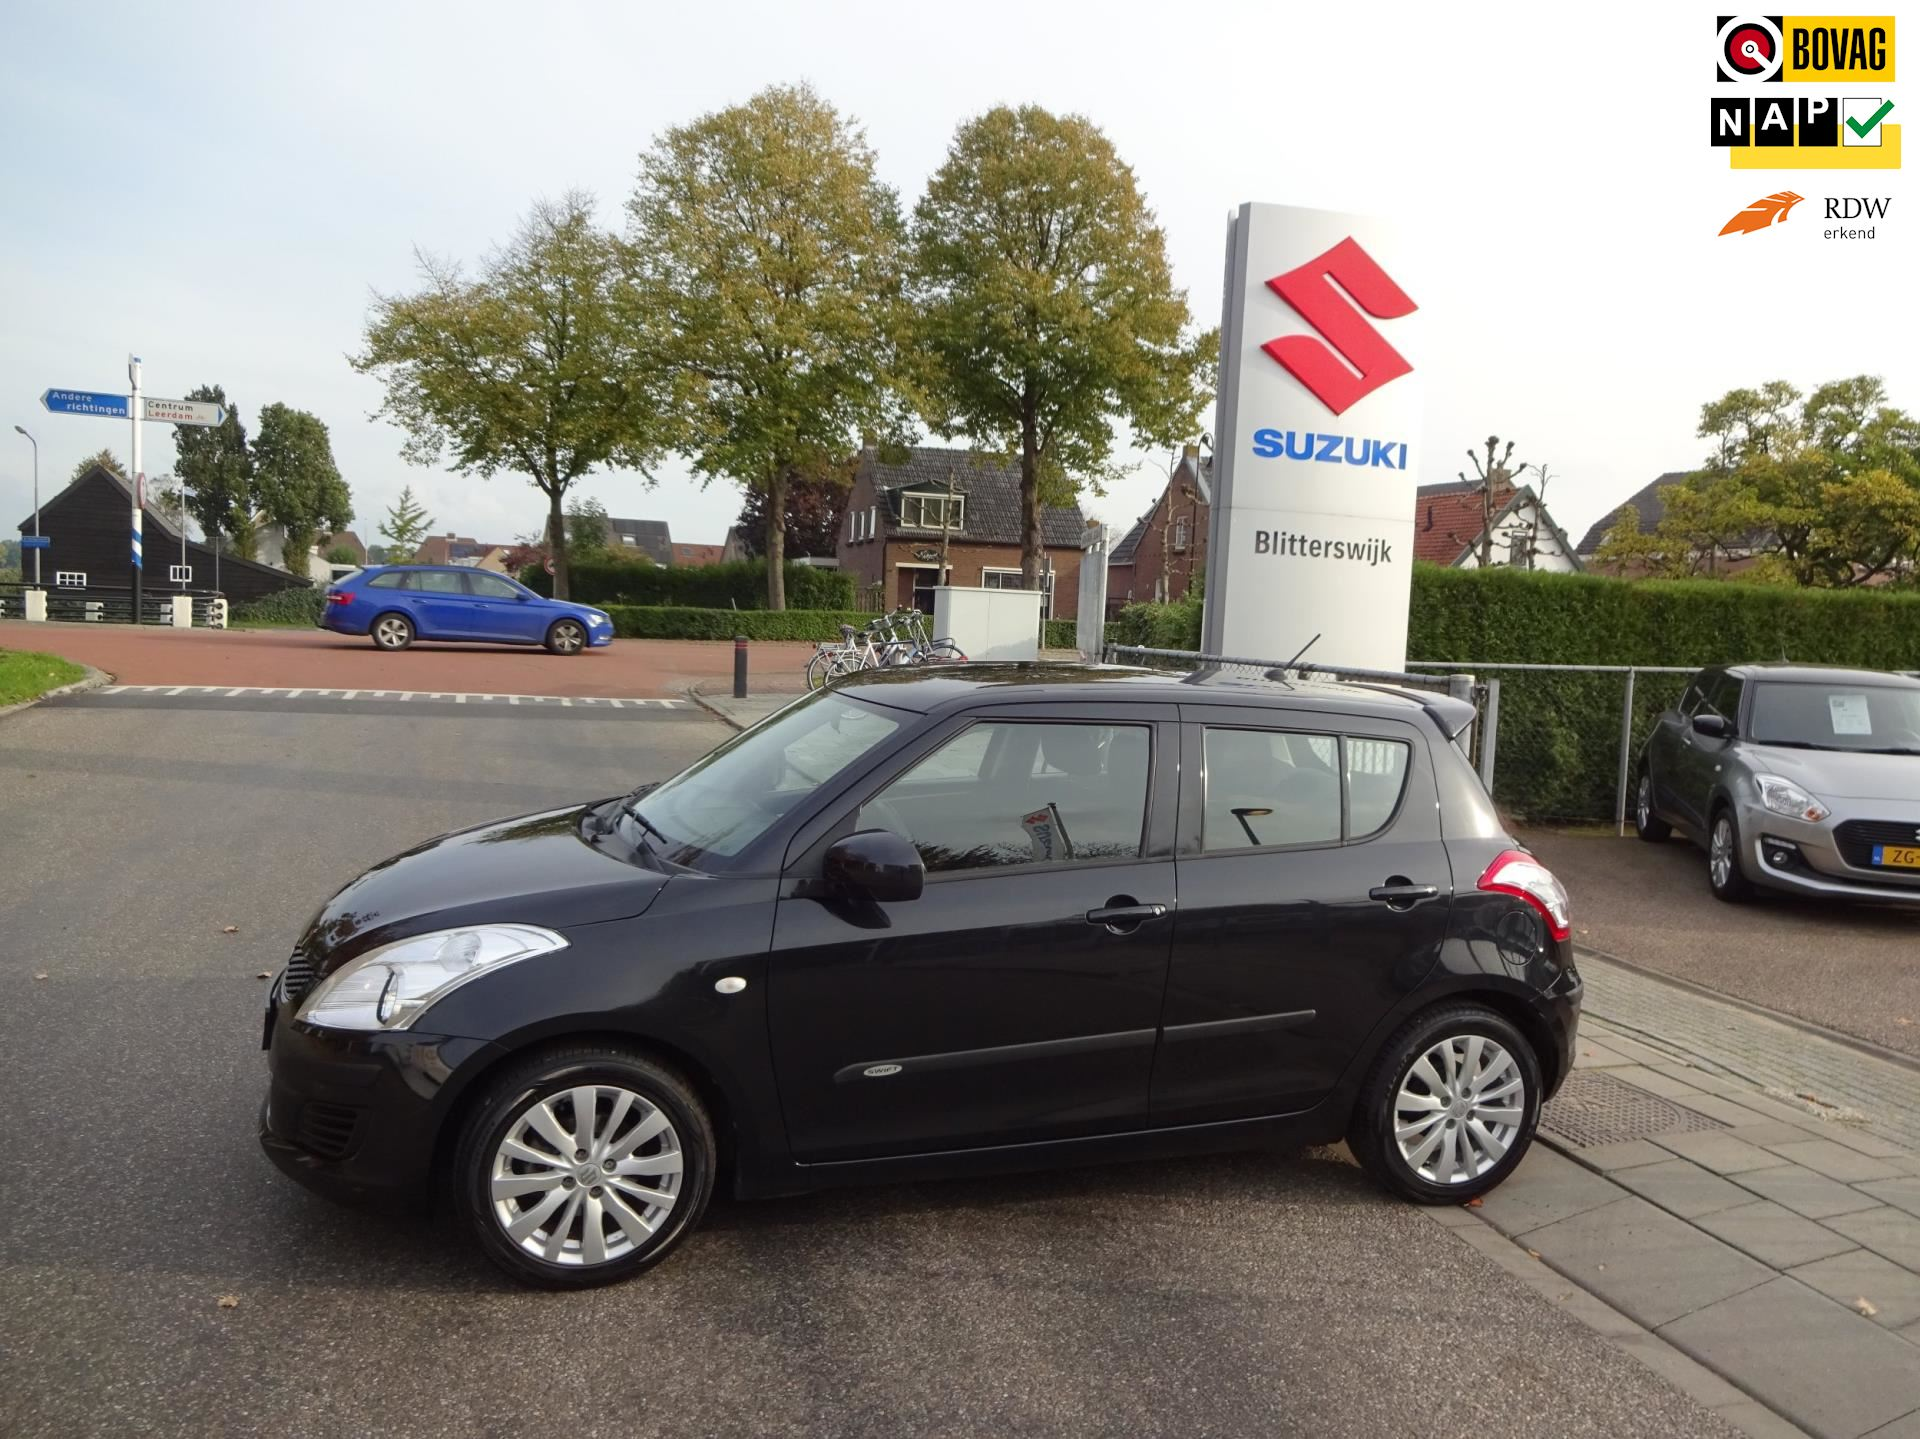 Suzuki Swift occasion - Garage Blitterswijk V.O.F.